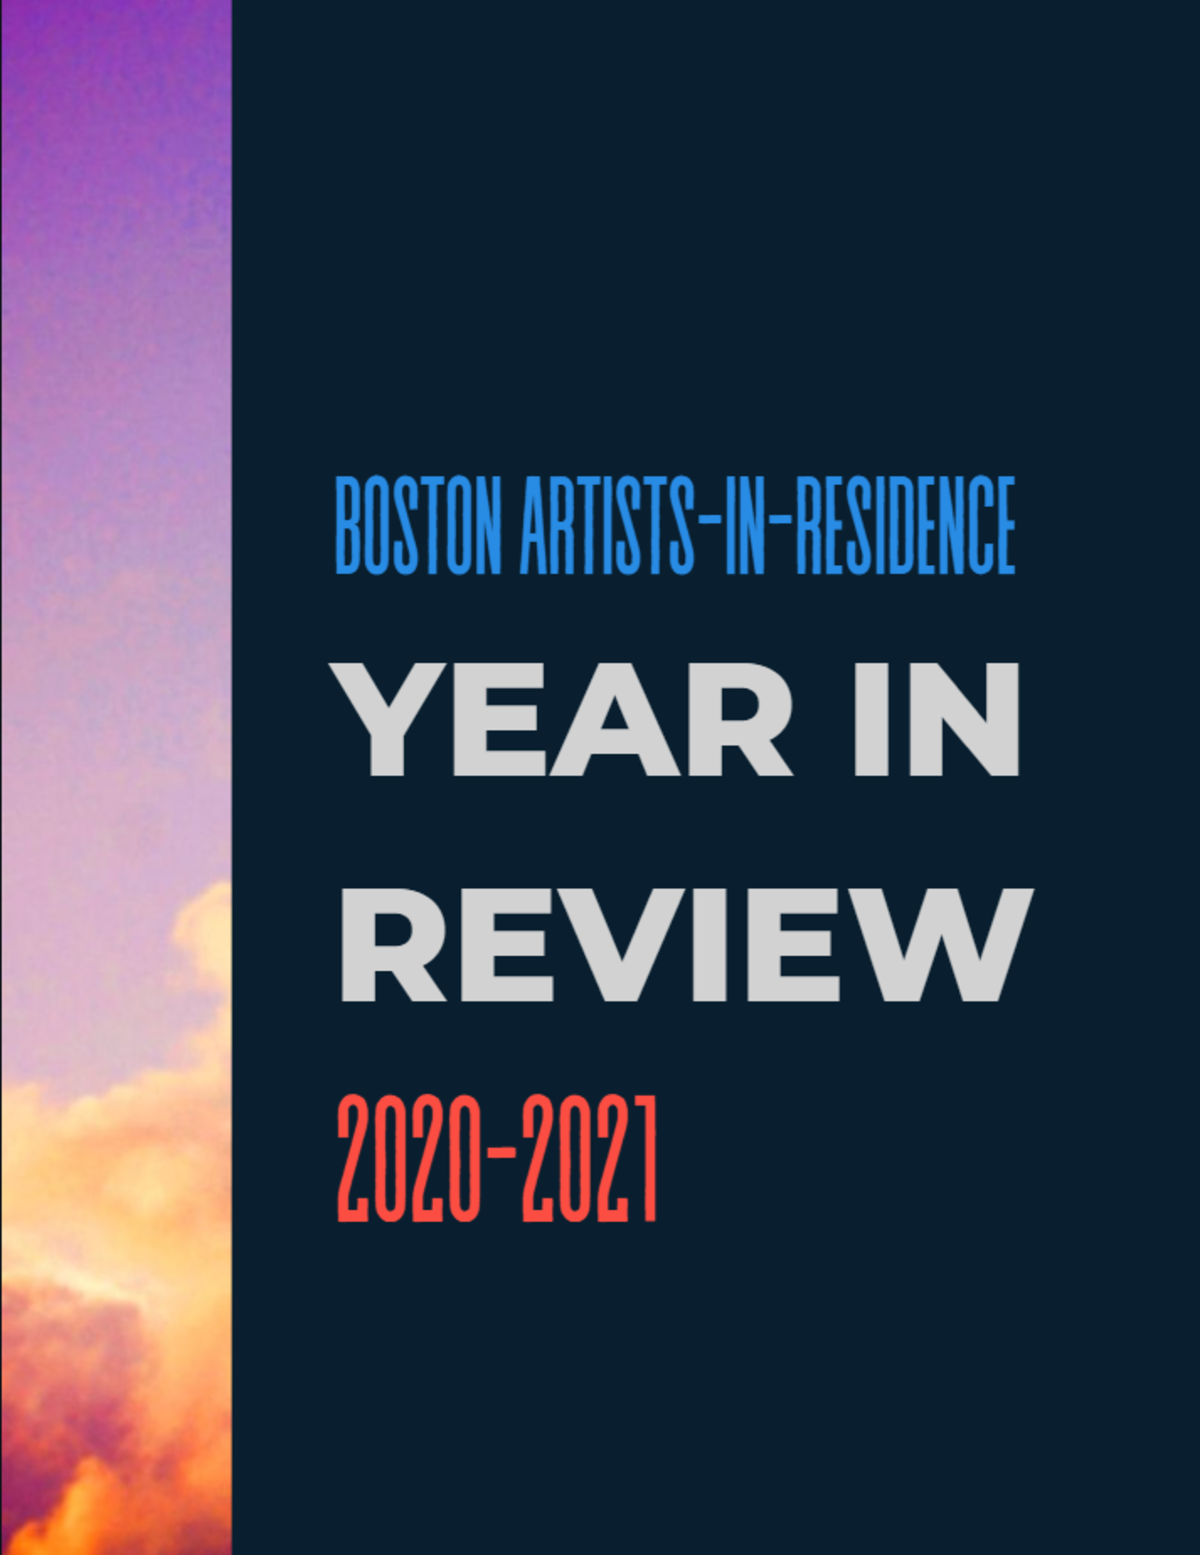 Boston AIR year in review cover